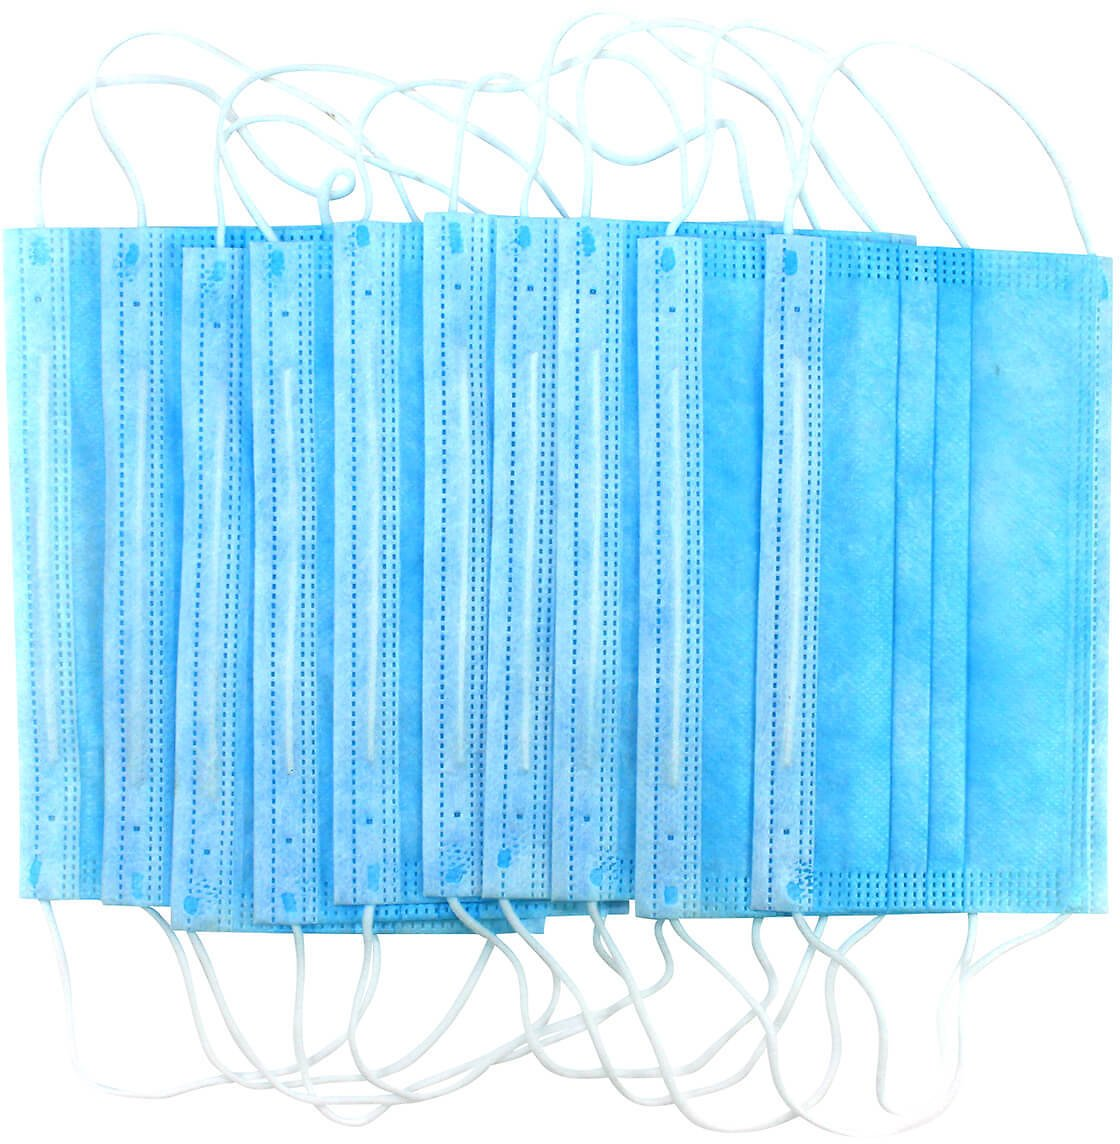 3 Ply Disposable Masks, Set of 10 - Face Covering - Dream Products